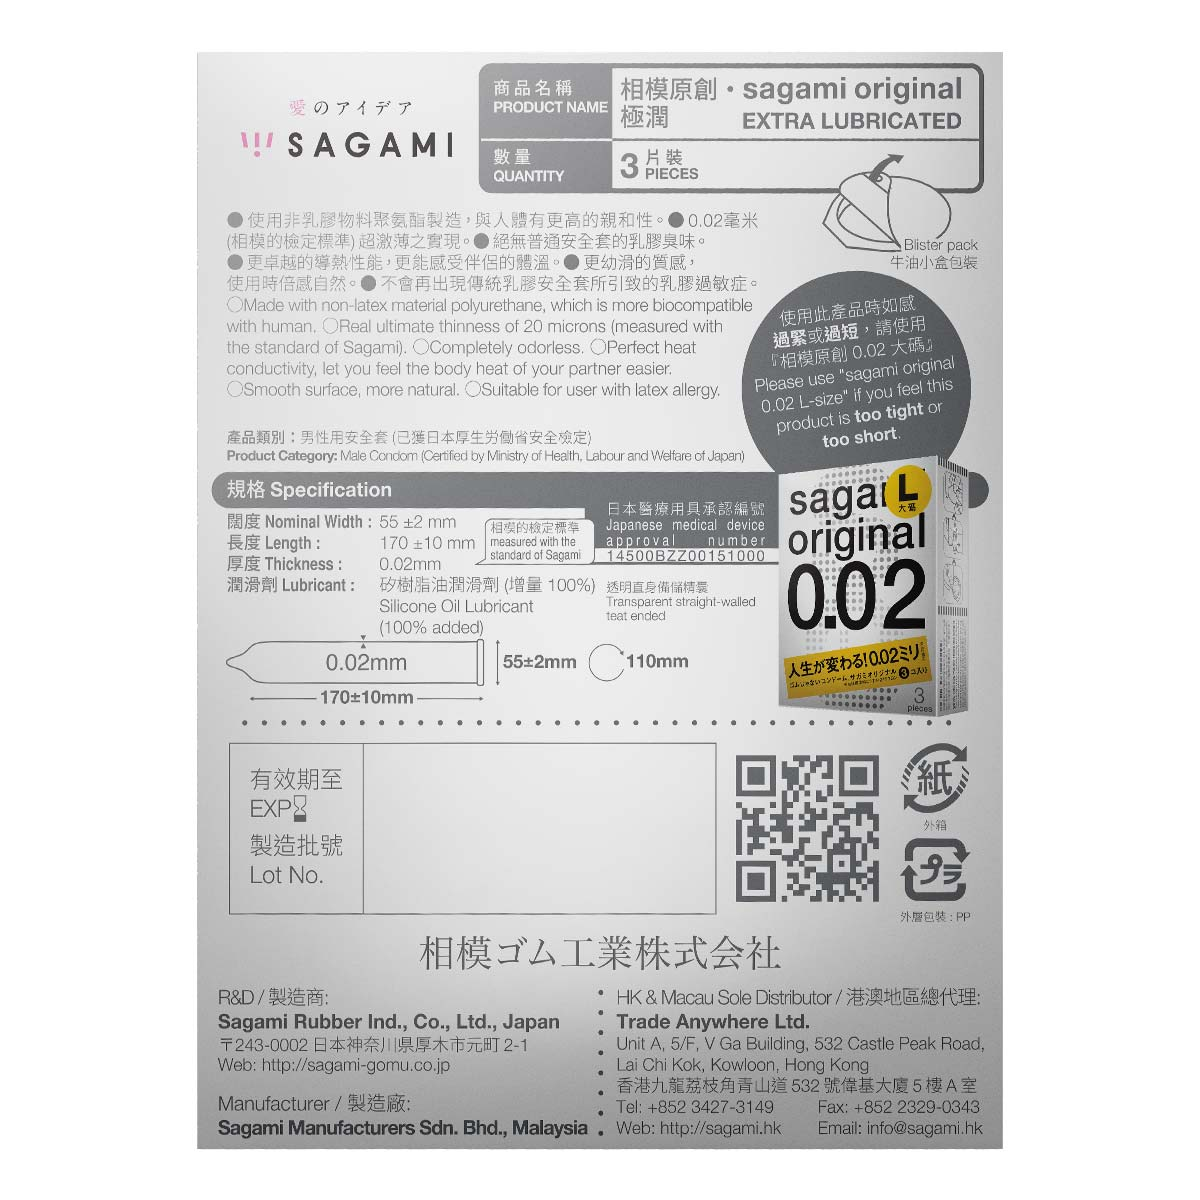 Sagami Original 0.02 Extra Lubricated (2nd generation) 3's Pack PU Condom